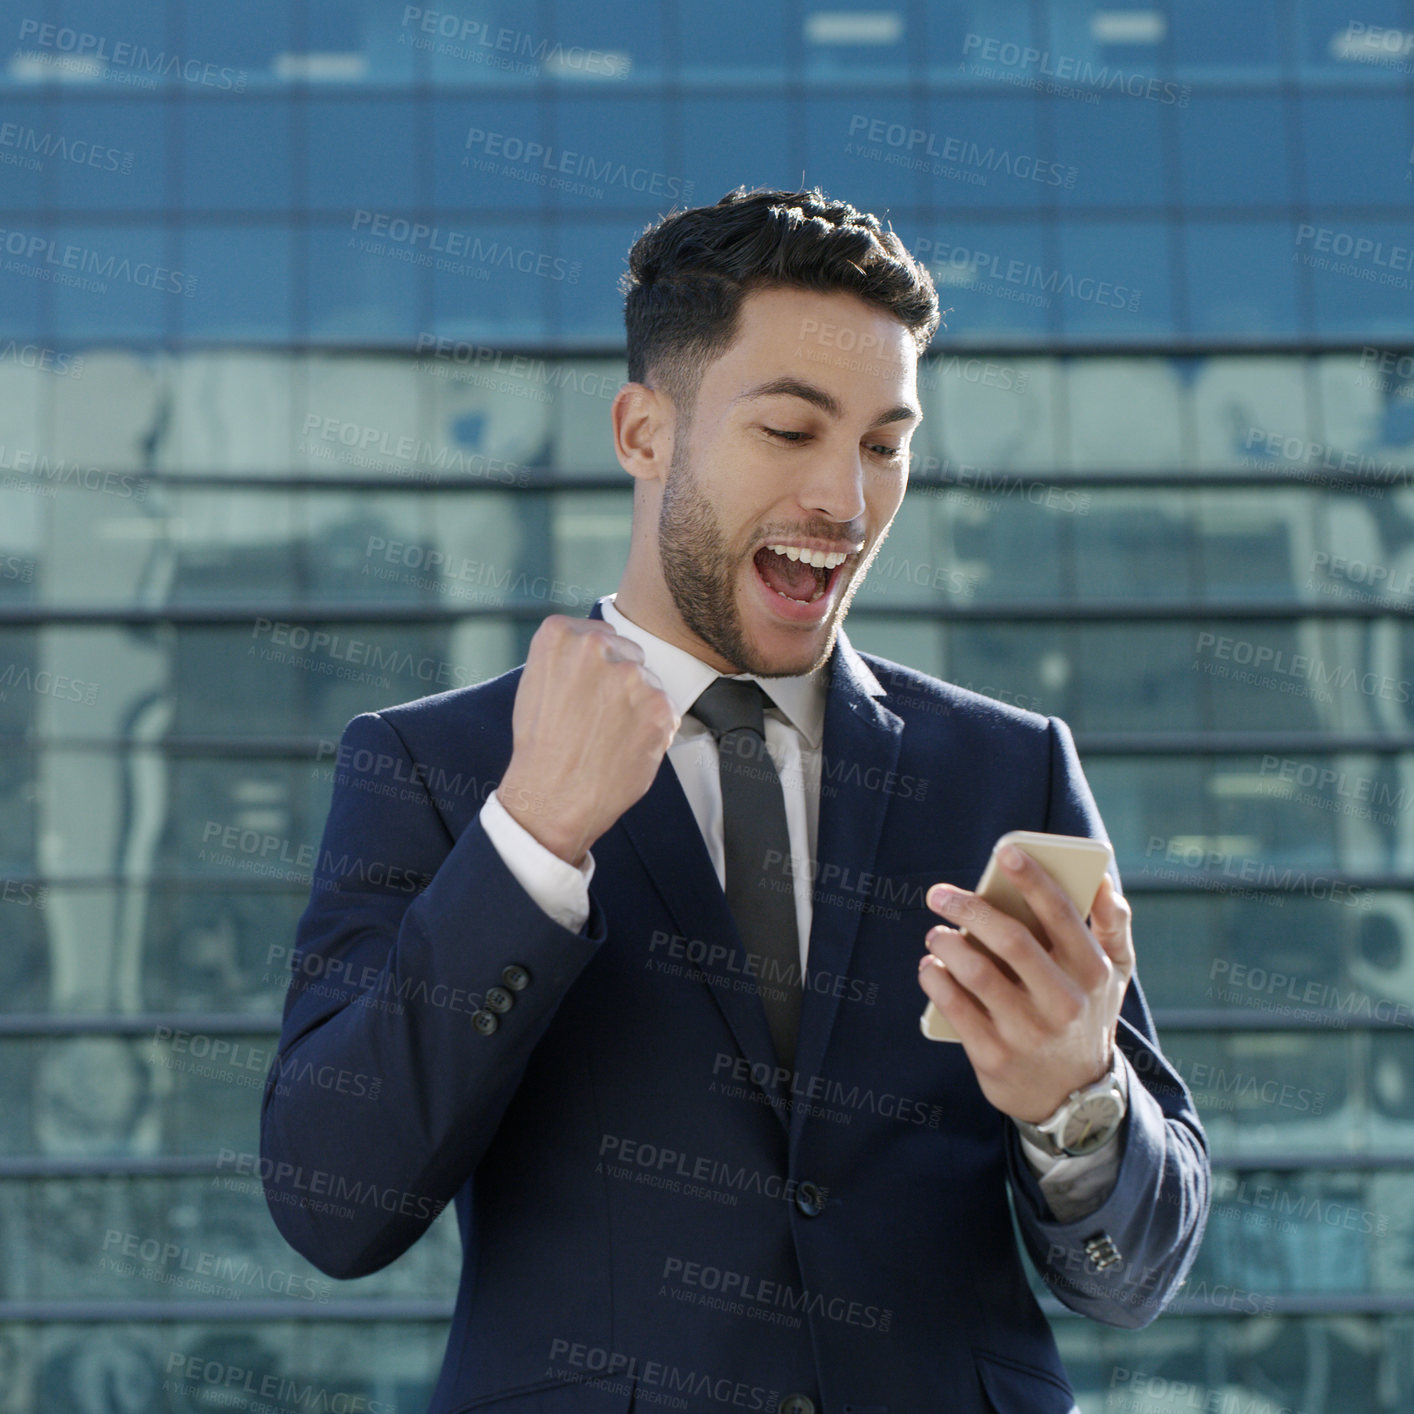 Buy stock photo Shot of a young businessman using a smartphone and celebrating good news against an urban background